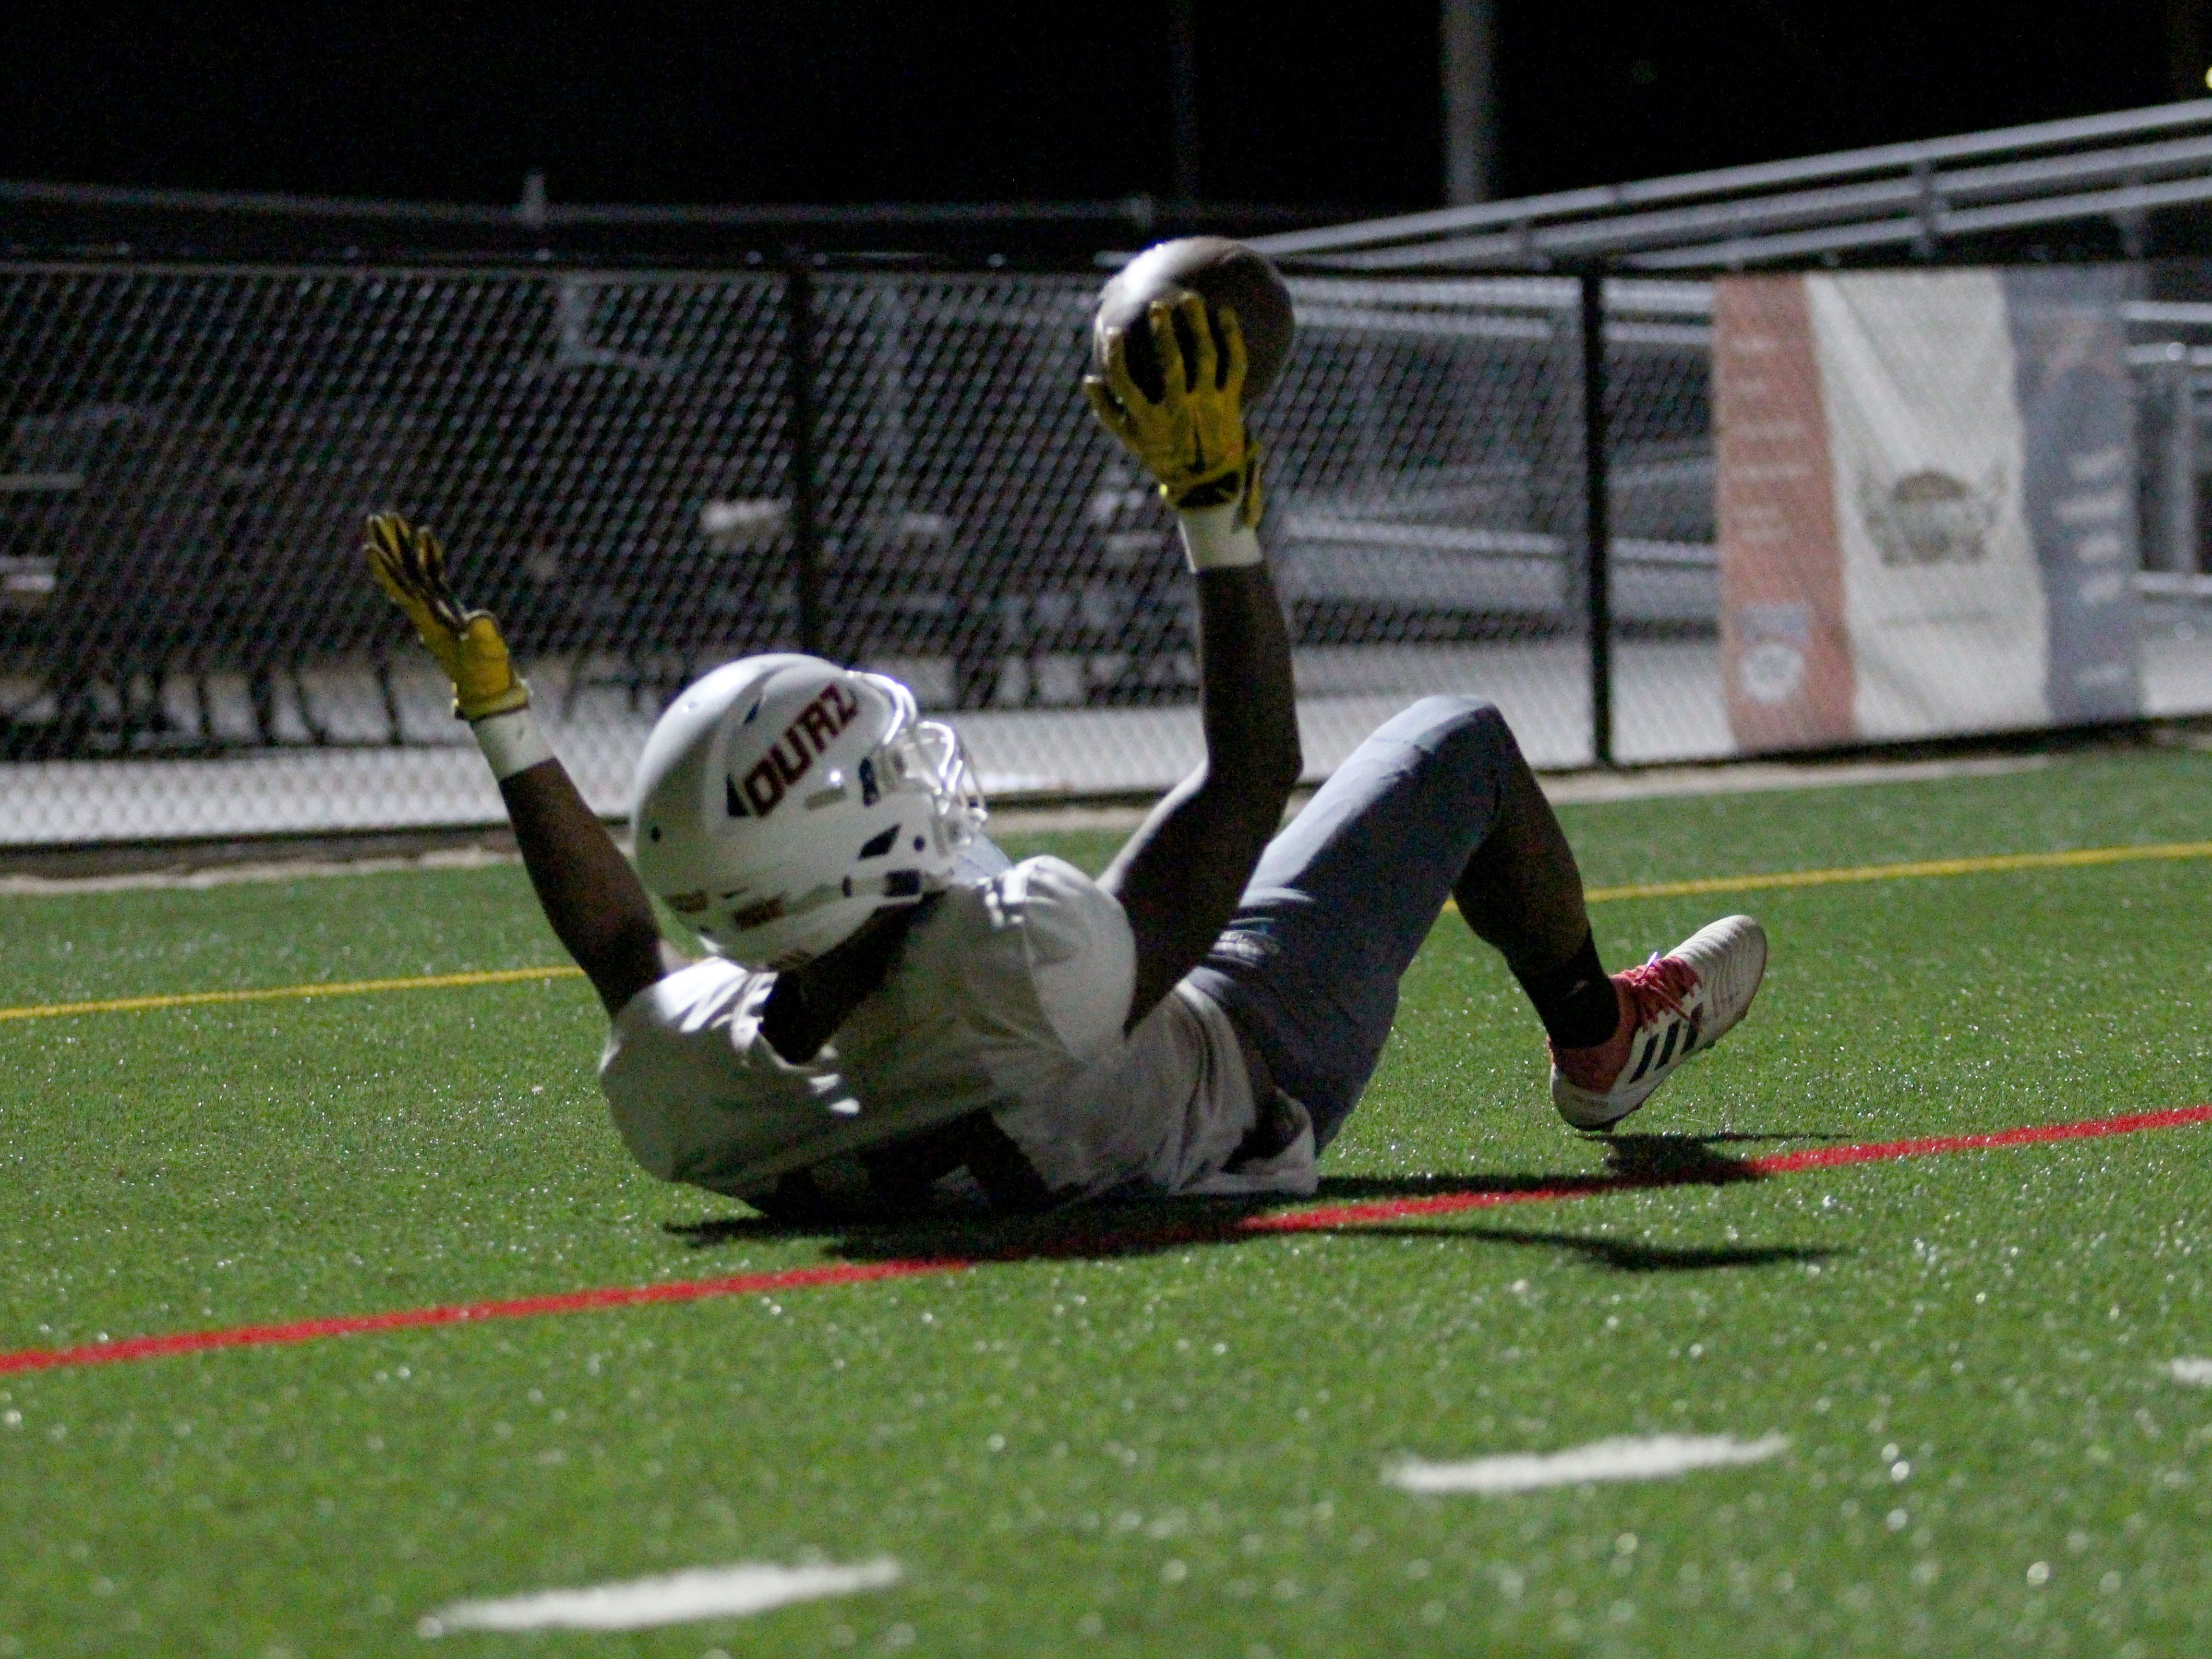 OUAZ's George Tribble Jr. celebrates a touchdown at practice on Tuesday night in Surprise on Sept. 11, 2018.